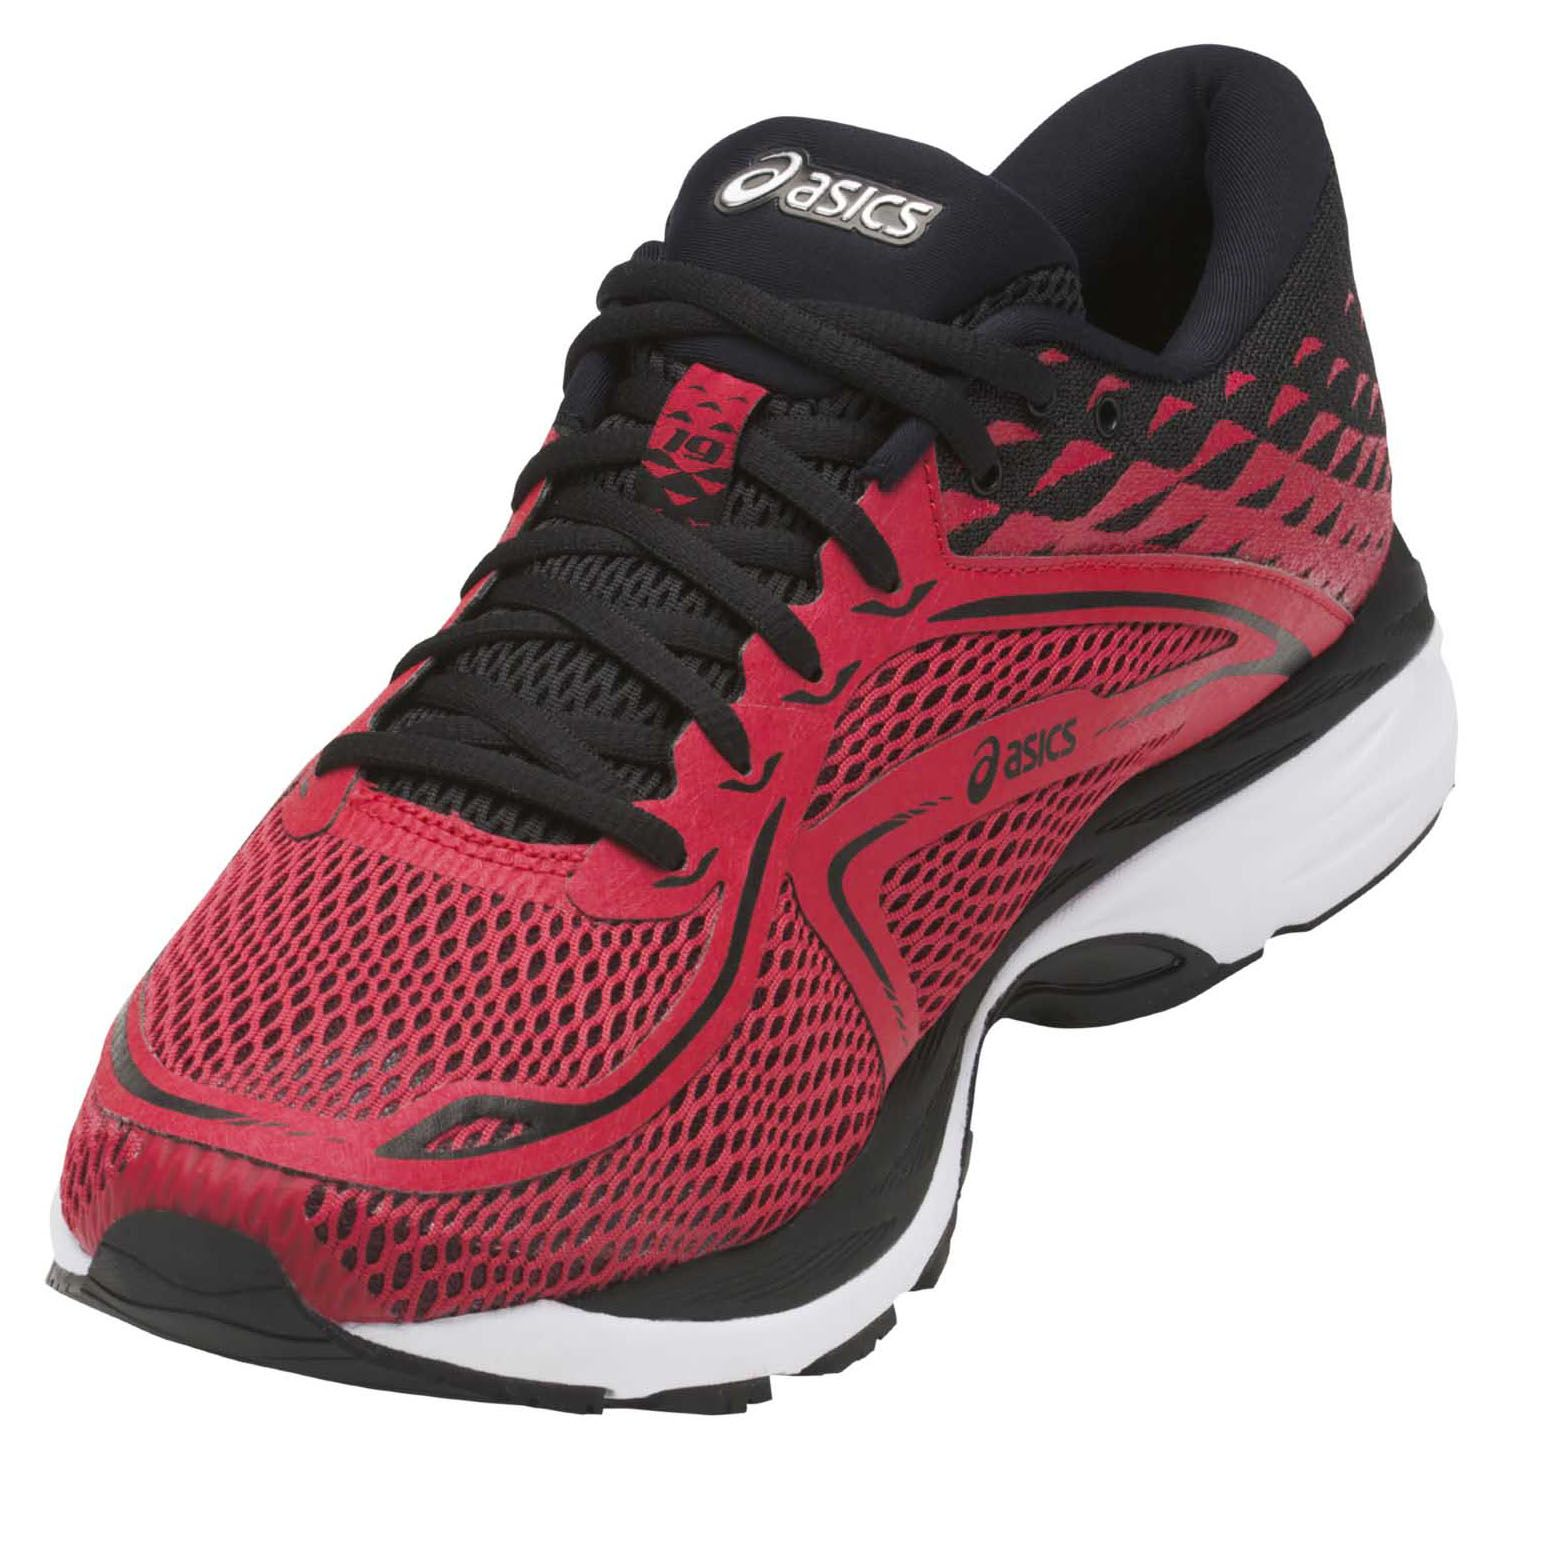 What Material Are Running Shoes Made Of